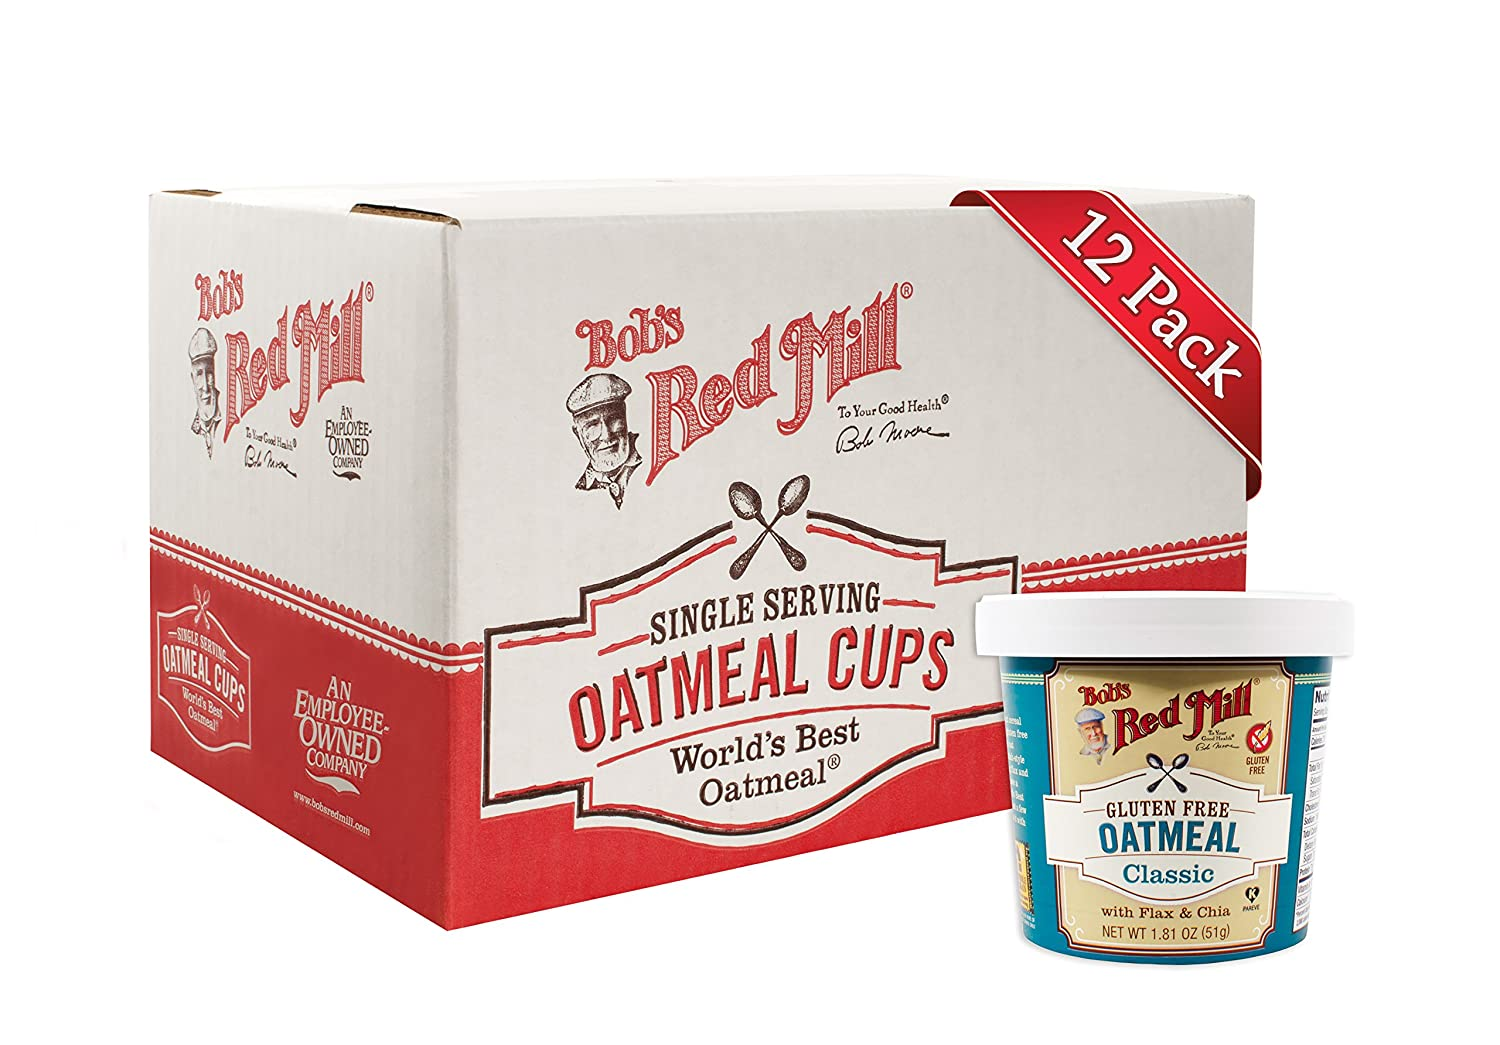 Bob's Red Mill Gluten Free Oatmeal Cup, Classic with Flax & Chia, 1.81-ounce (Pack of 12)